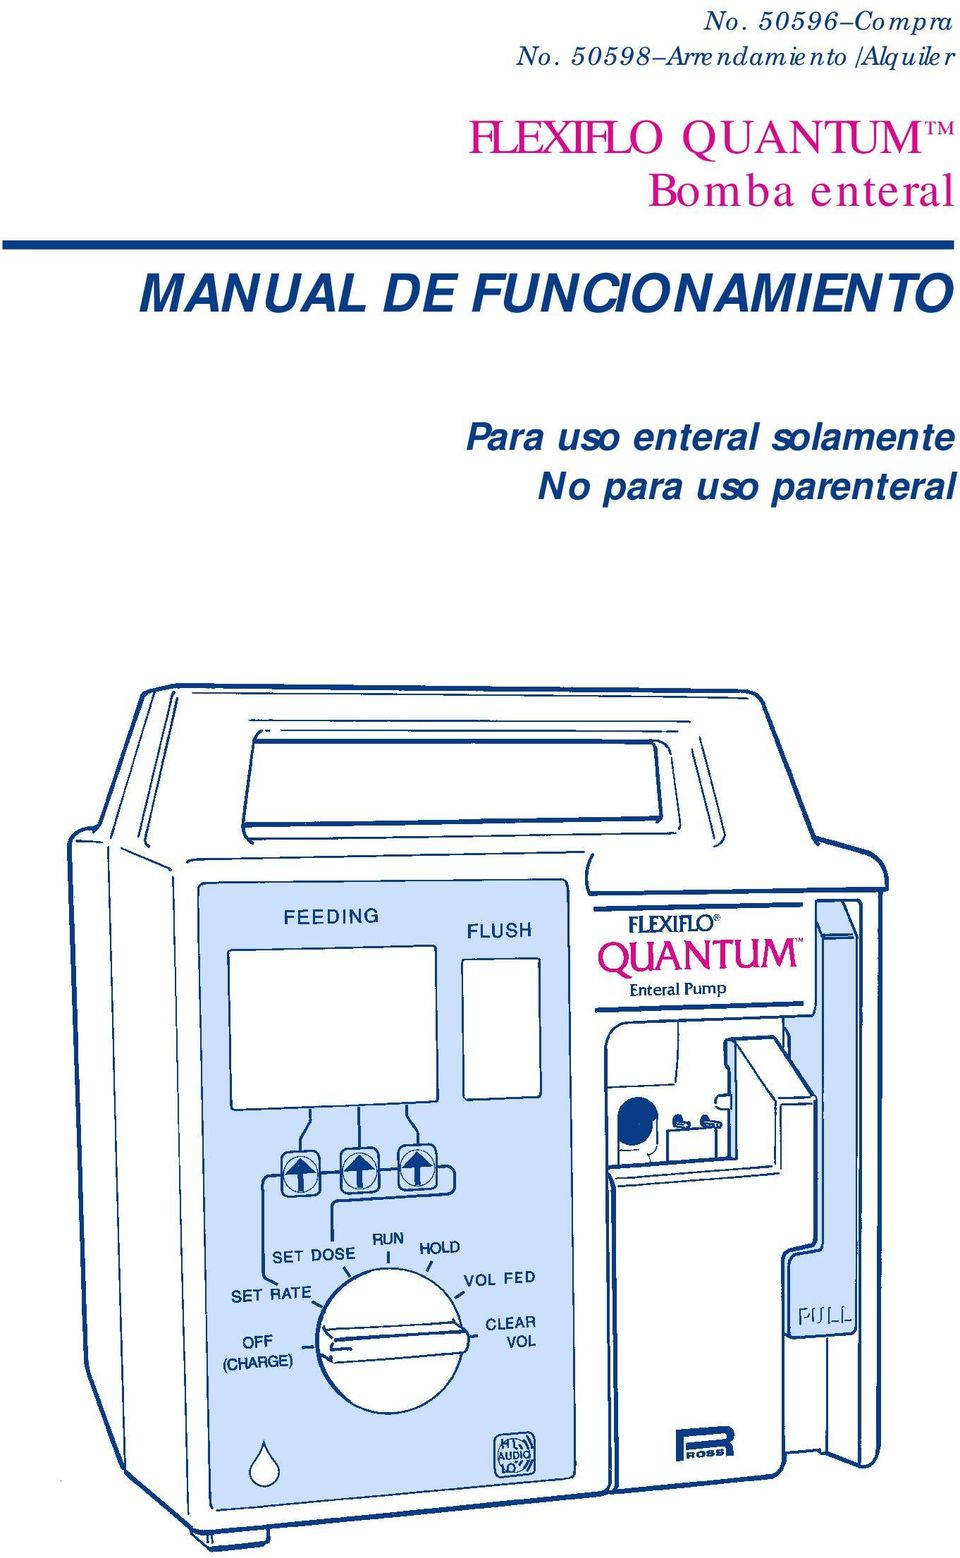 QUANTUM Bomba enteral MANUAL DE